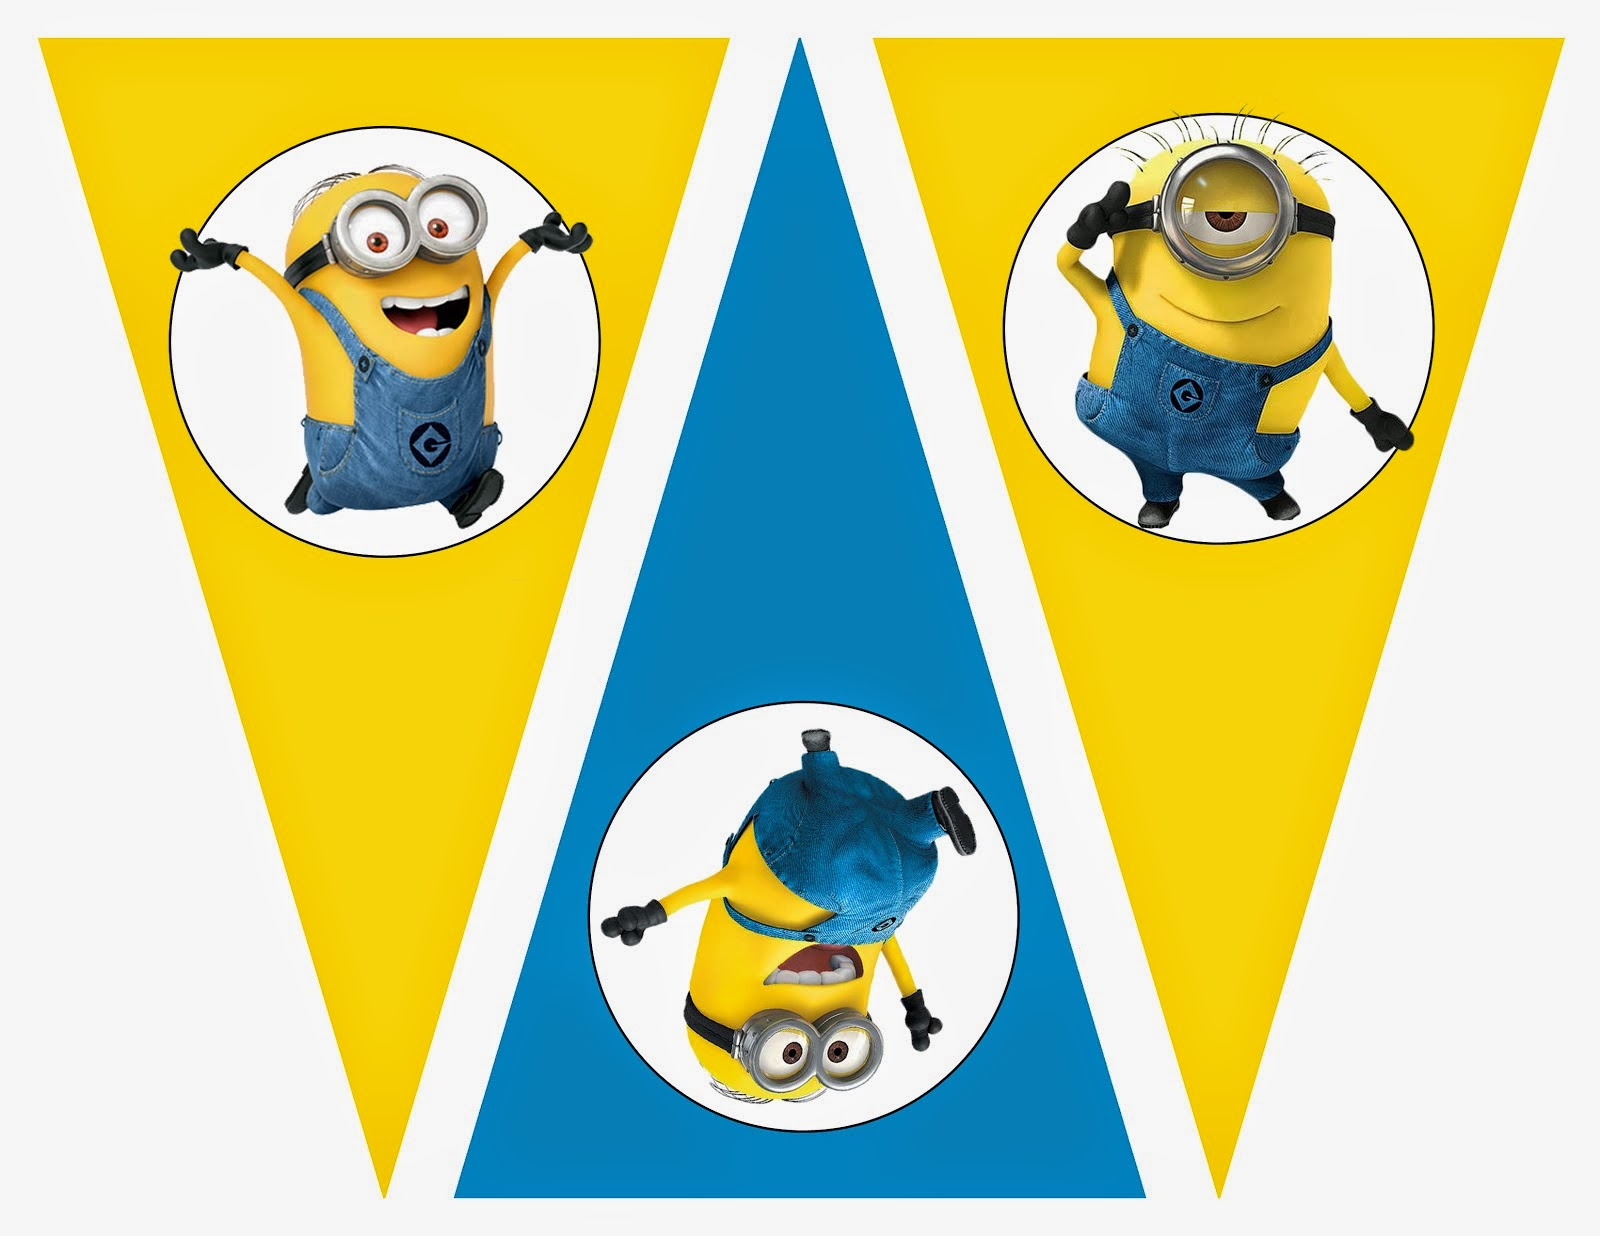 graphic about Minions Logo Printable called Minions: Cost-free Printable Bunting, Labels and Toppers. - Oh My